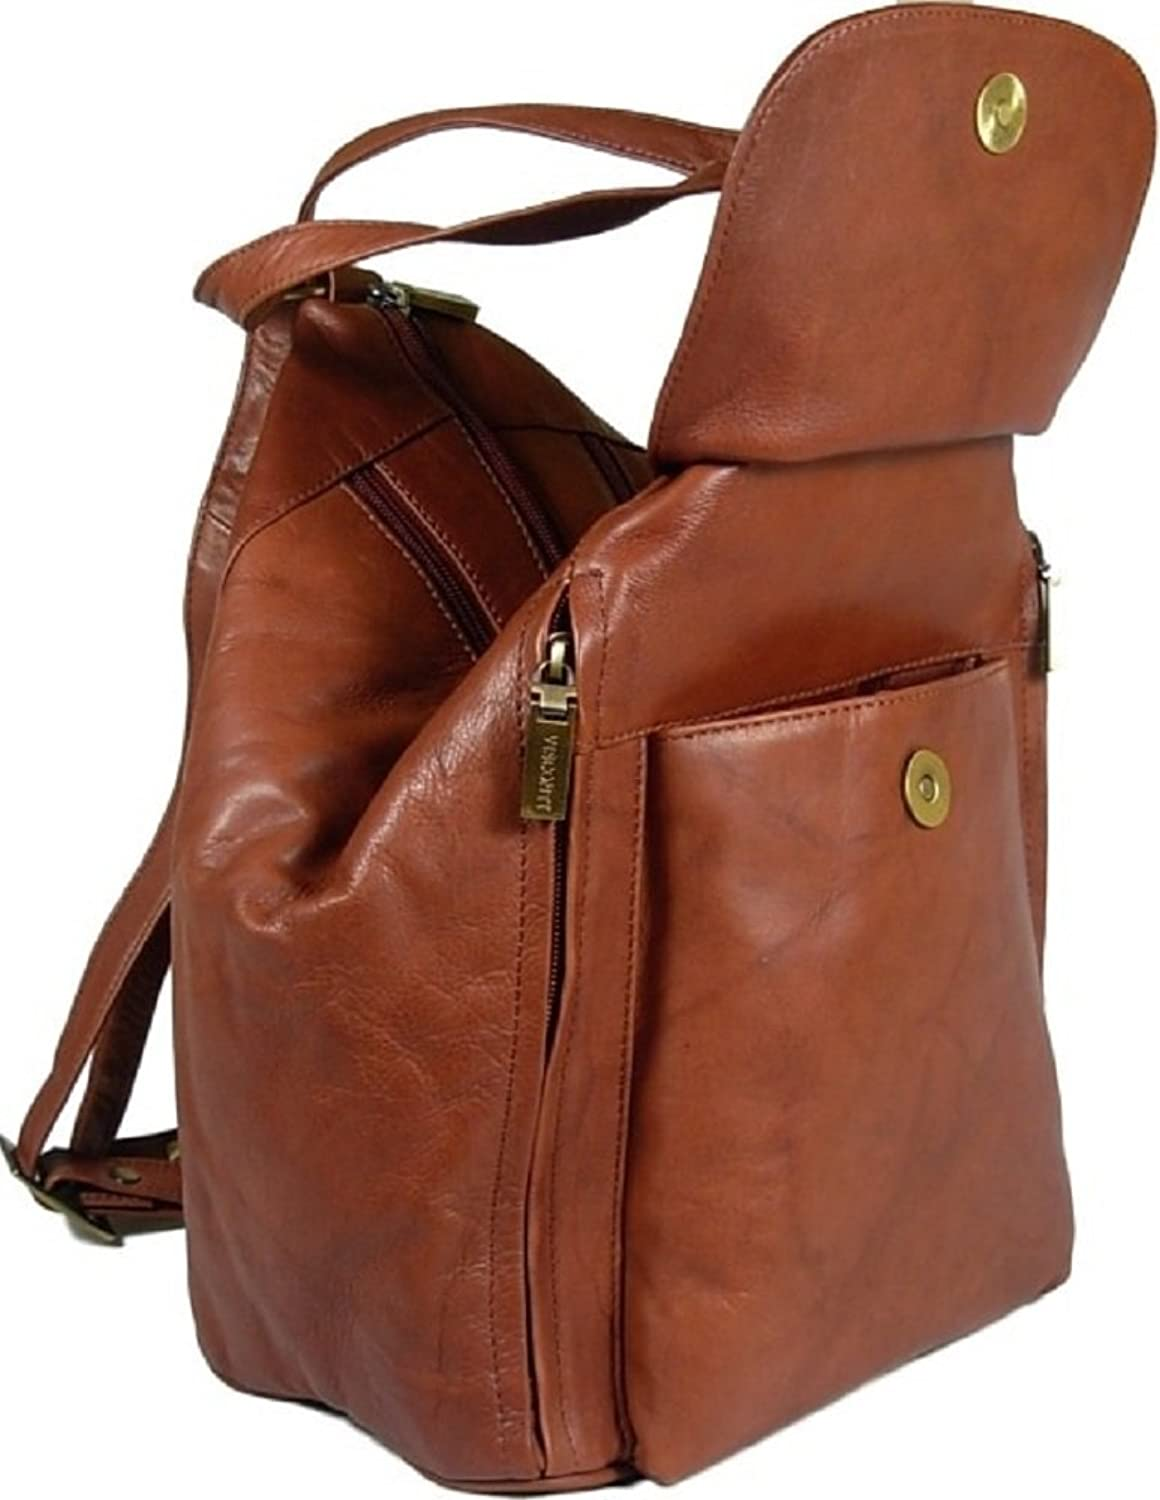 New girls/ladies gorgeous Visconti brown soft leather backpack bag ...